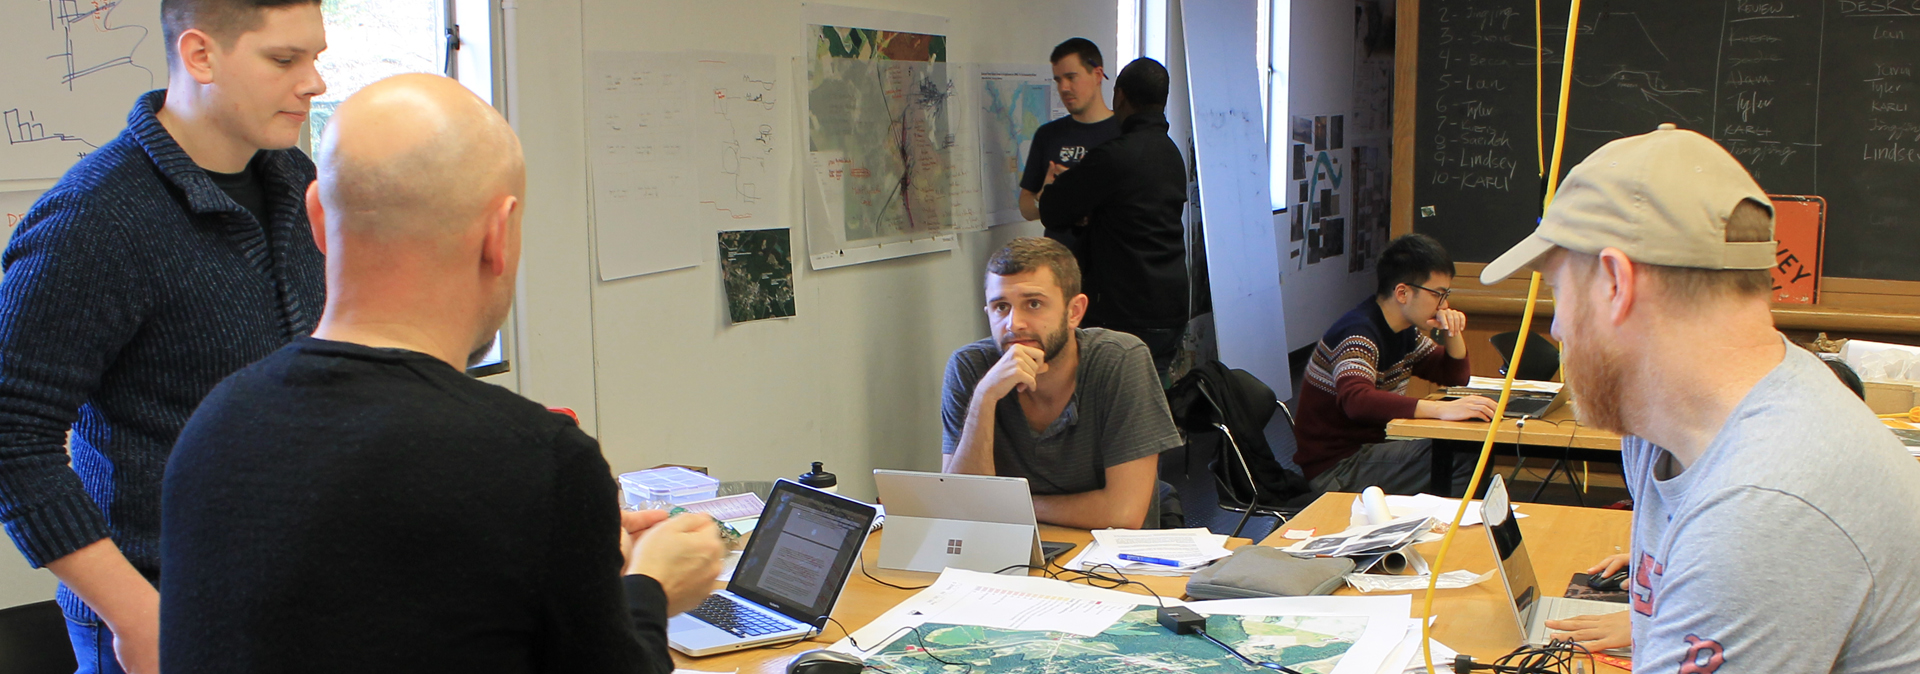 Landscape architecture students with faculty